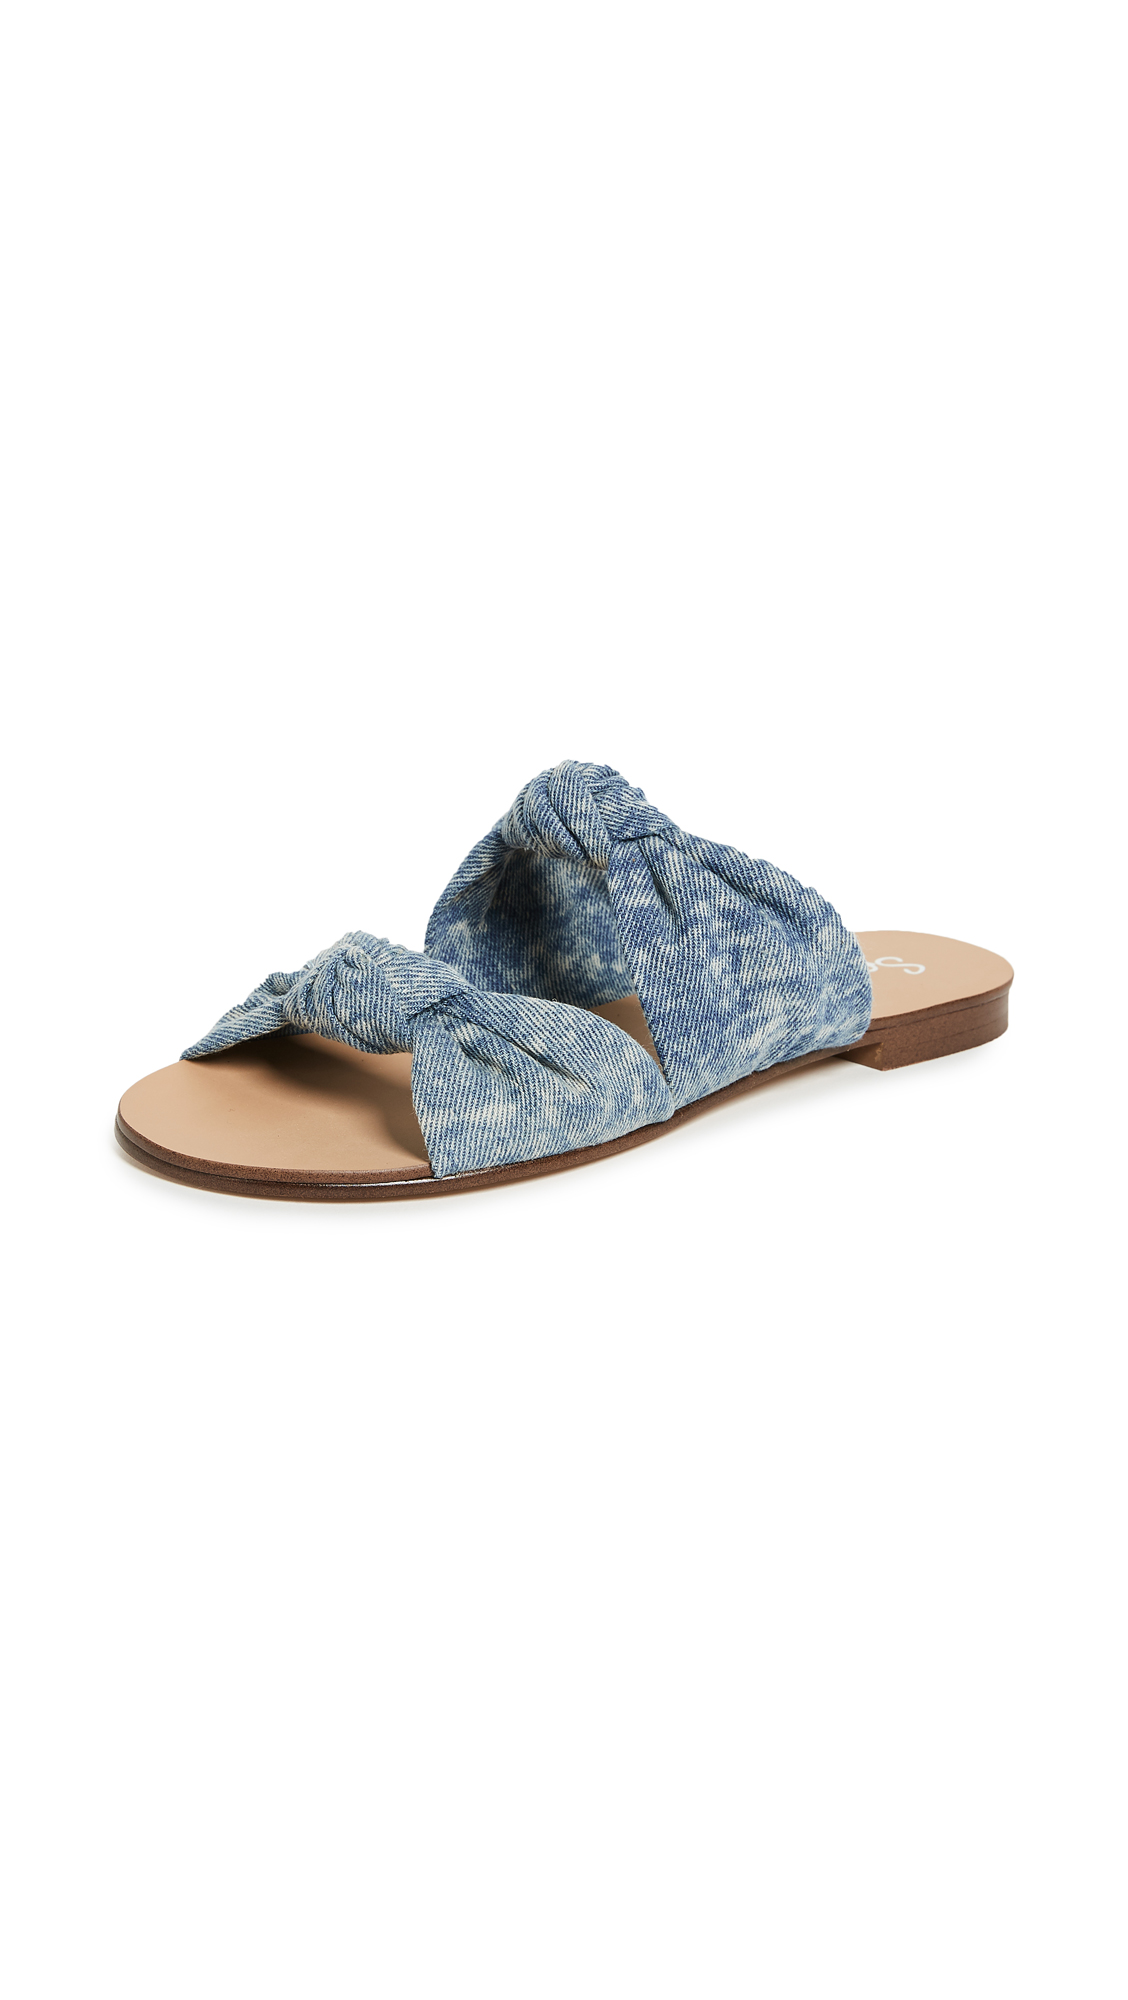 Splendid Barton Knotted Slides - Denim